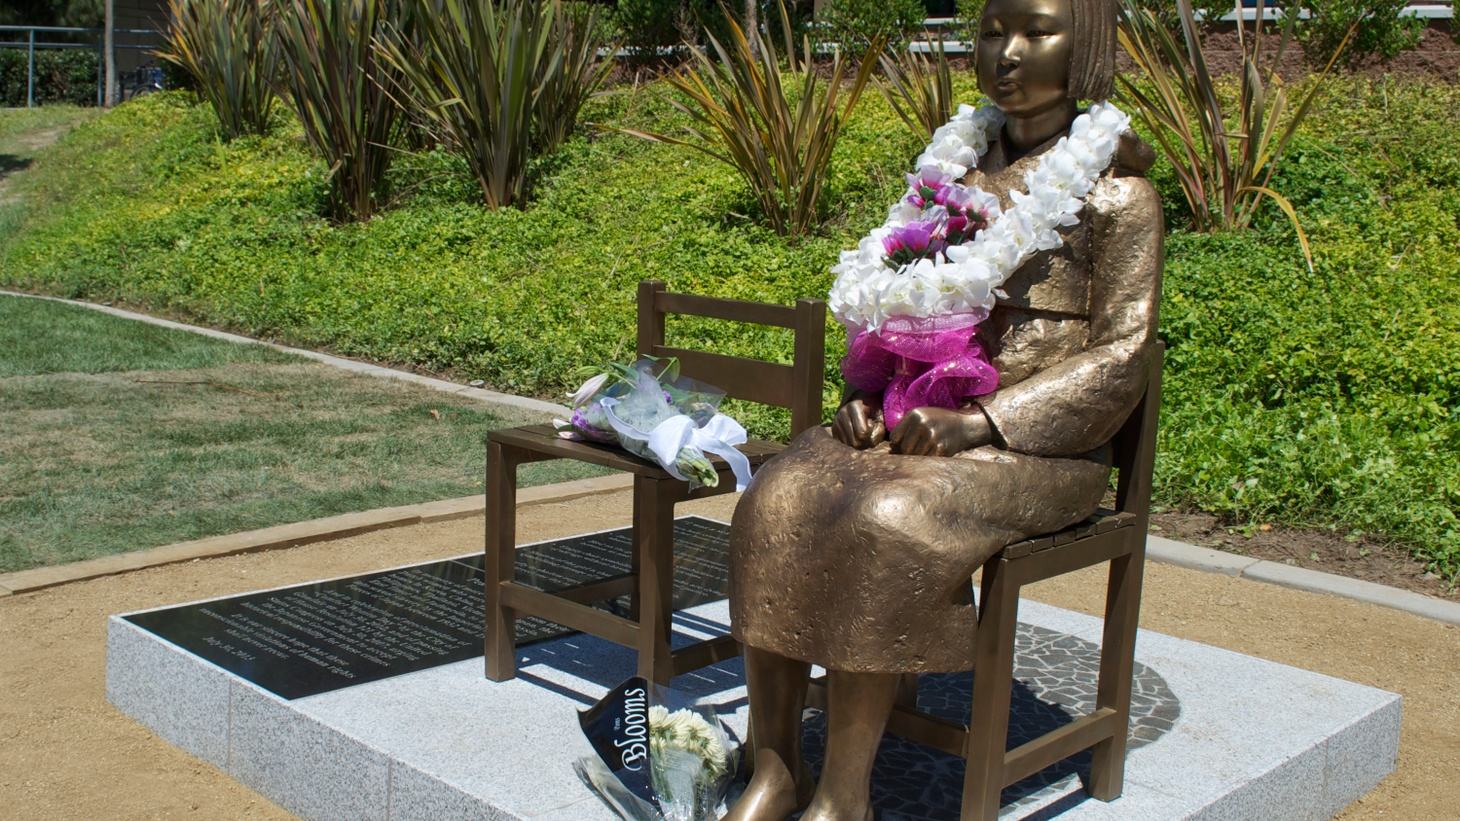 "Glendale is one of seven suburban communities with a statue memorializing the so-called ""comfort women"" abducted for use by Japanese soldiers during World War II. Now San Francisco may become the first major American city with a similar monument. But the proposal is creating international controversy."